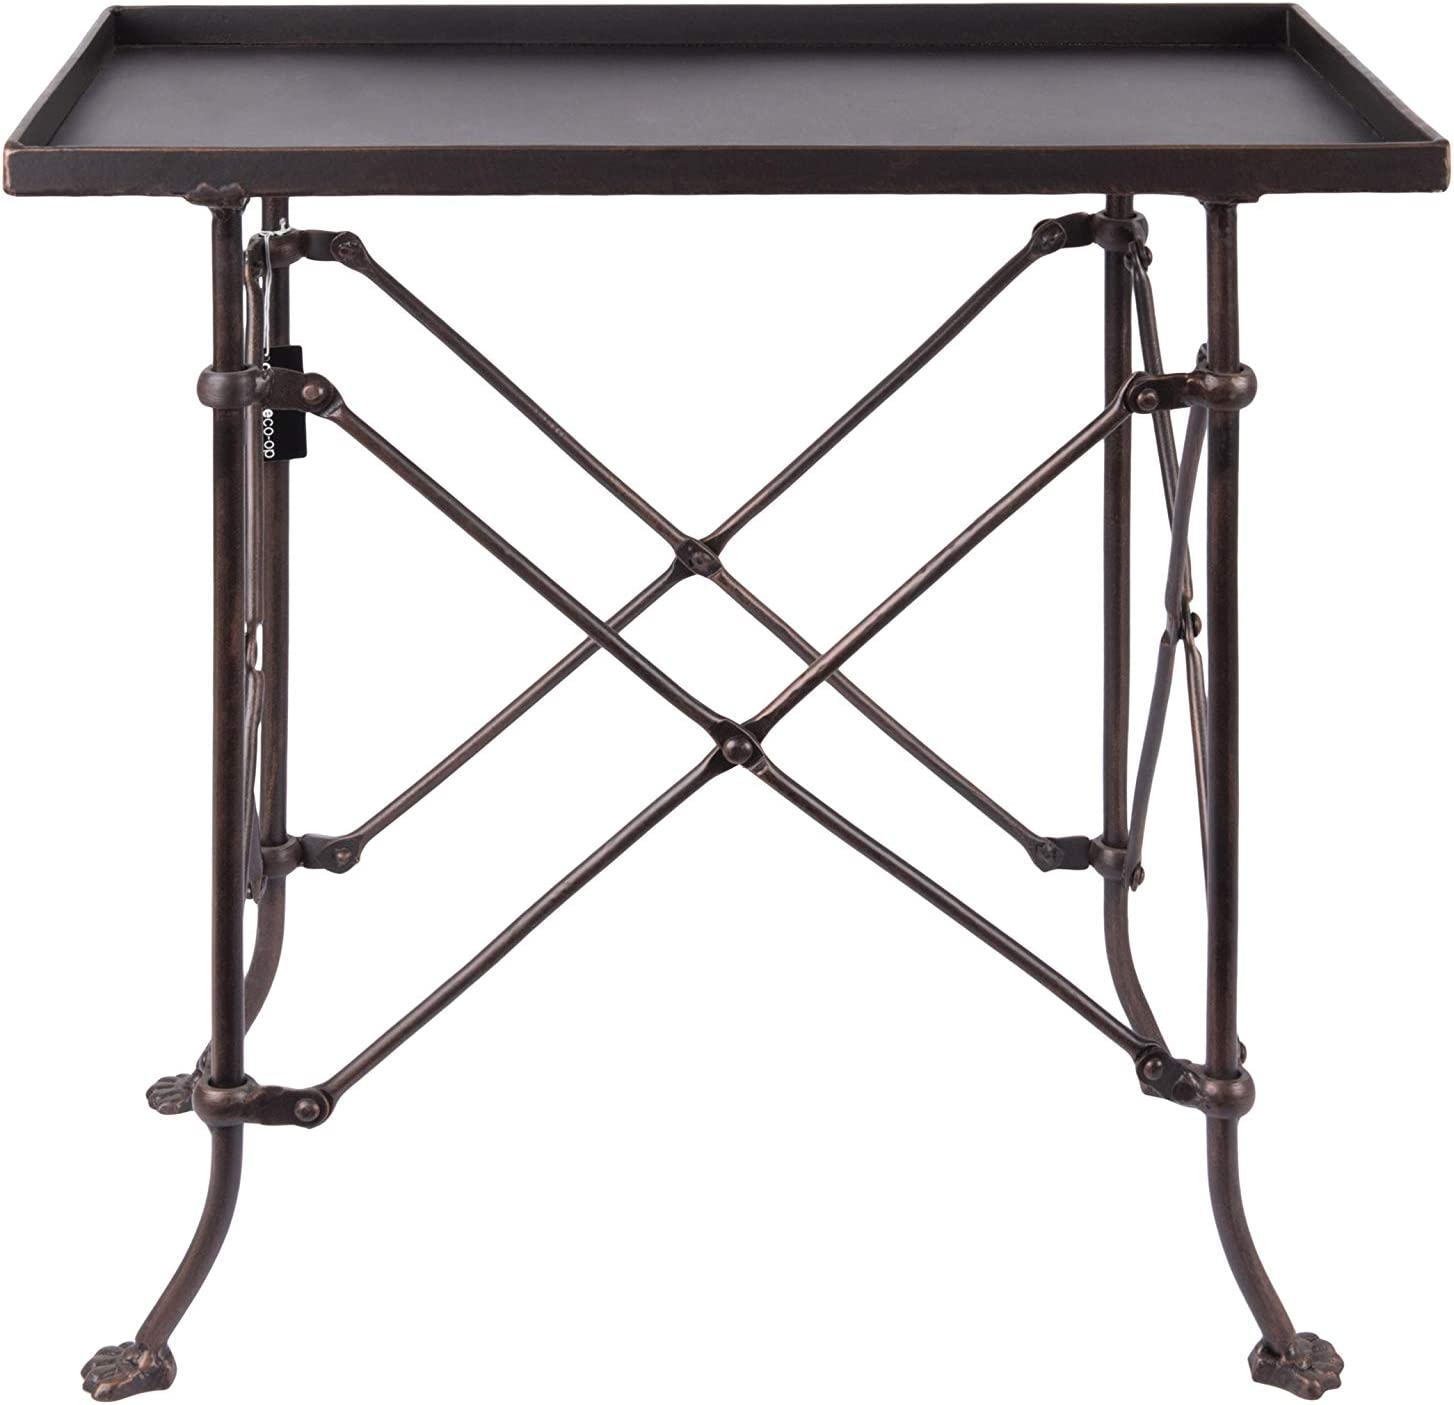 Creative Co-op Bronze Metal Rectangle Table, 20""